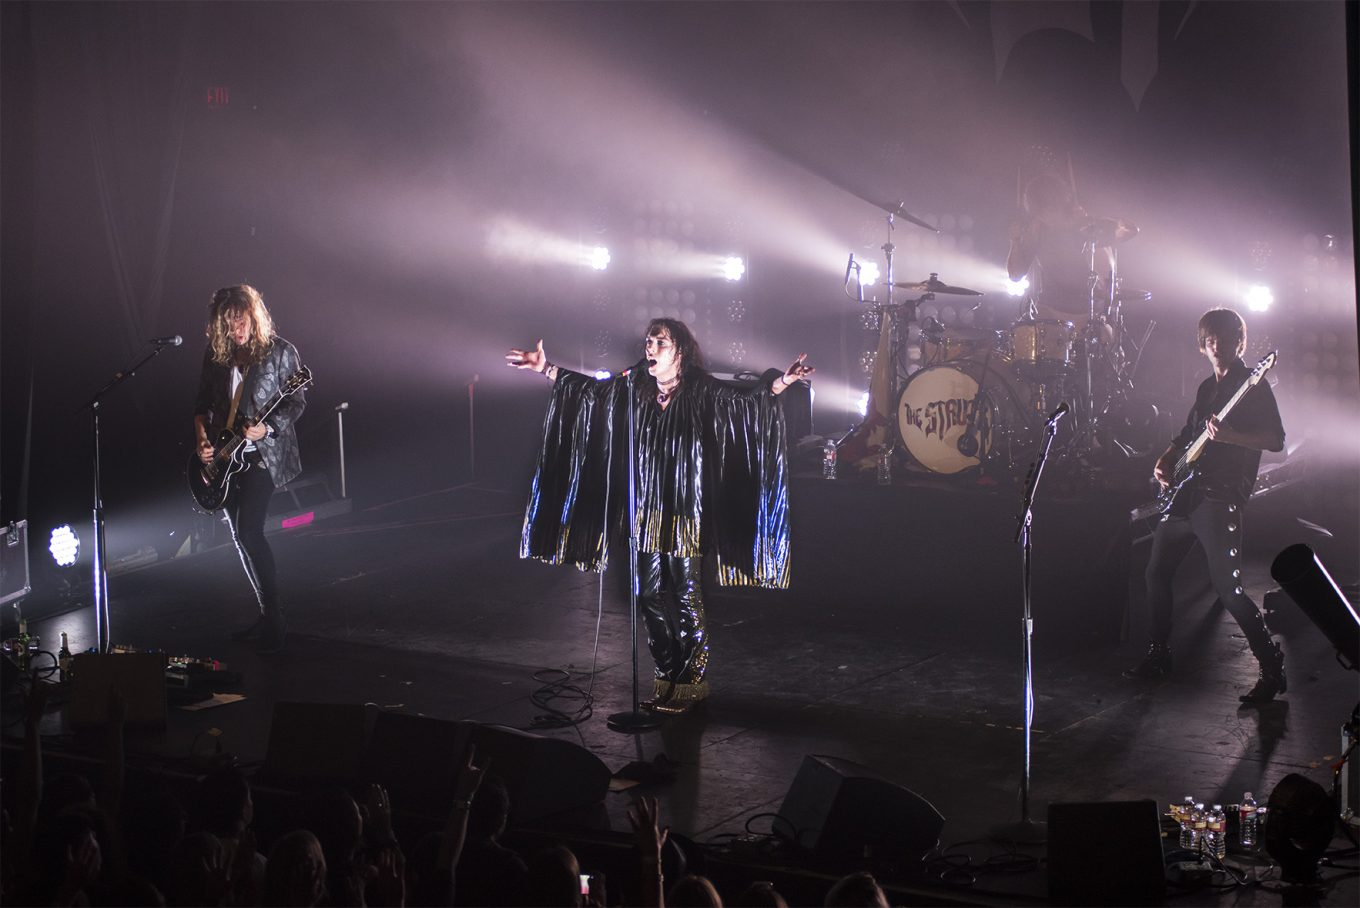 Exclusive Interview With The Struts: British Retro Rockers Flaunt Glam Style